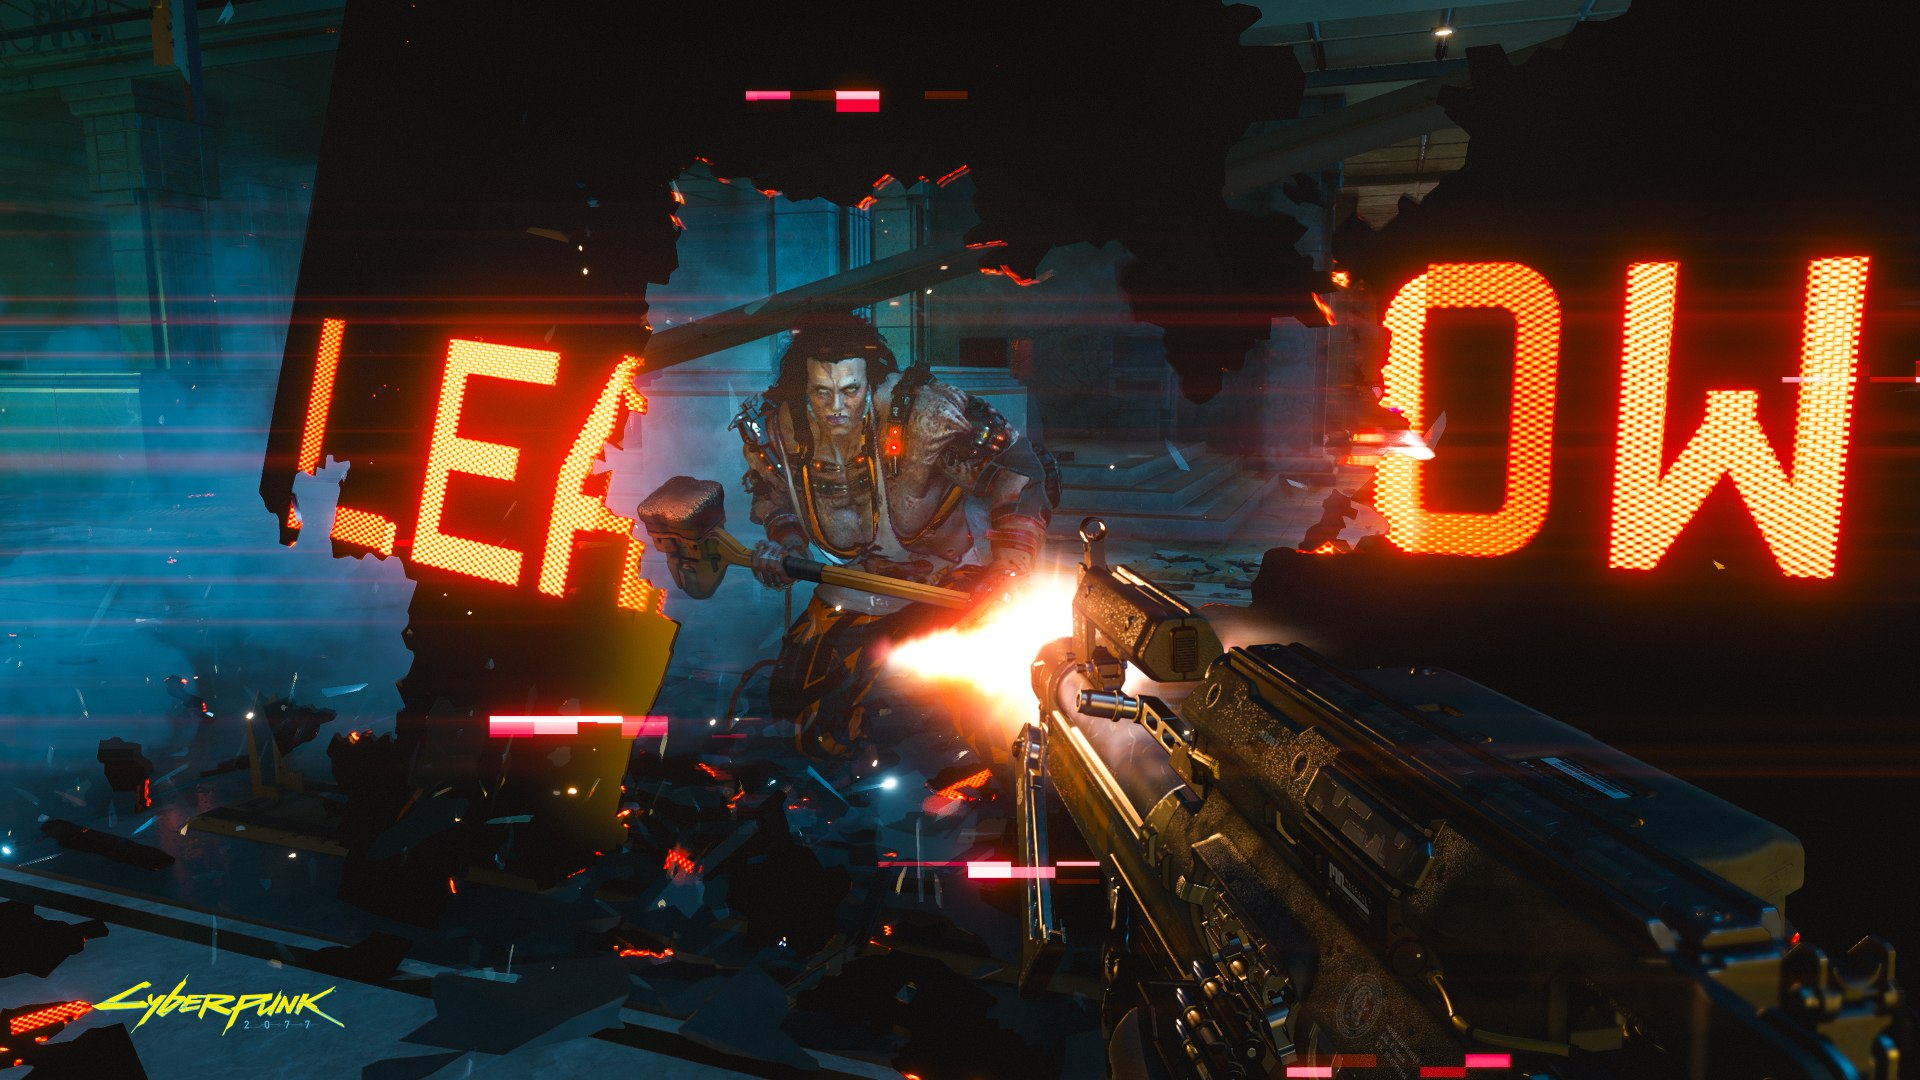 how long will it take to beat cyberpunk 2077